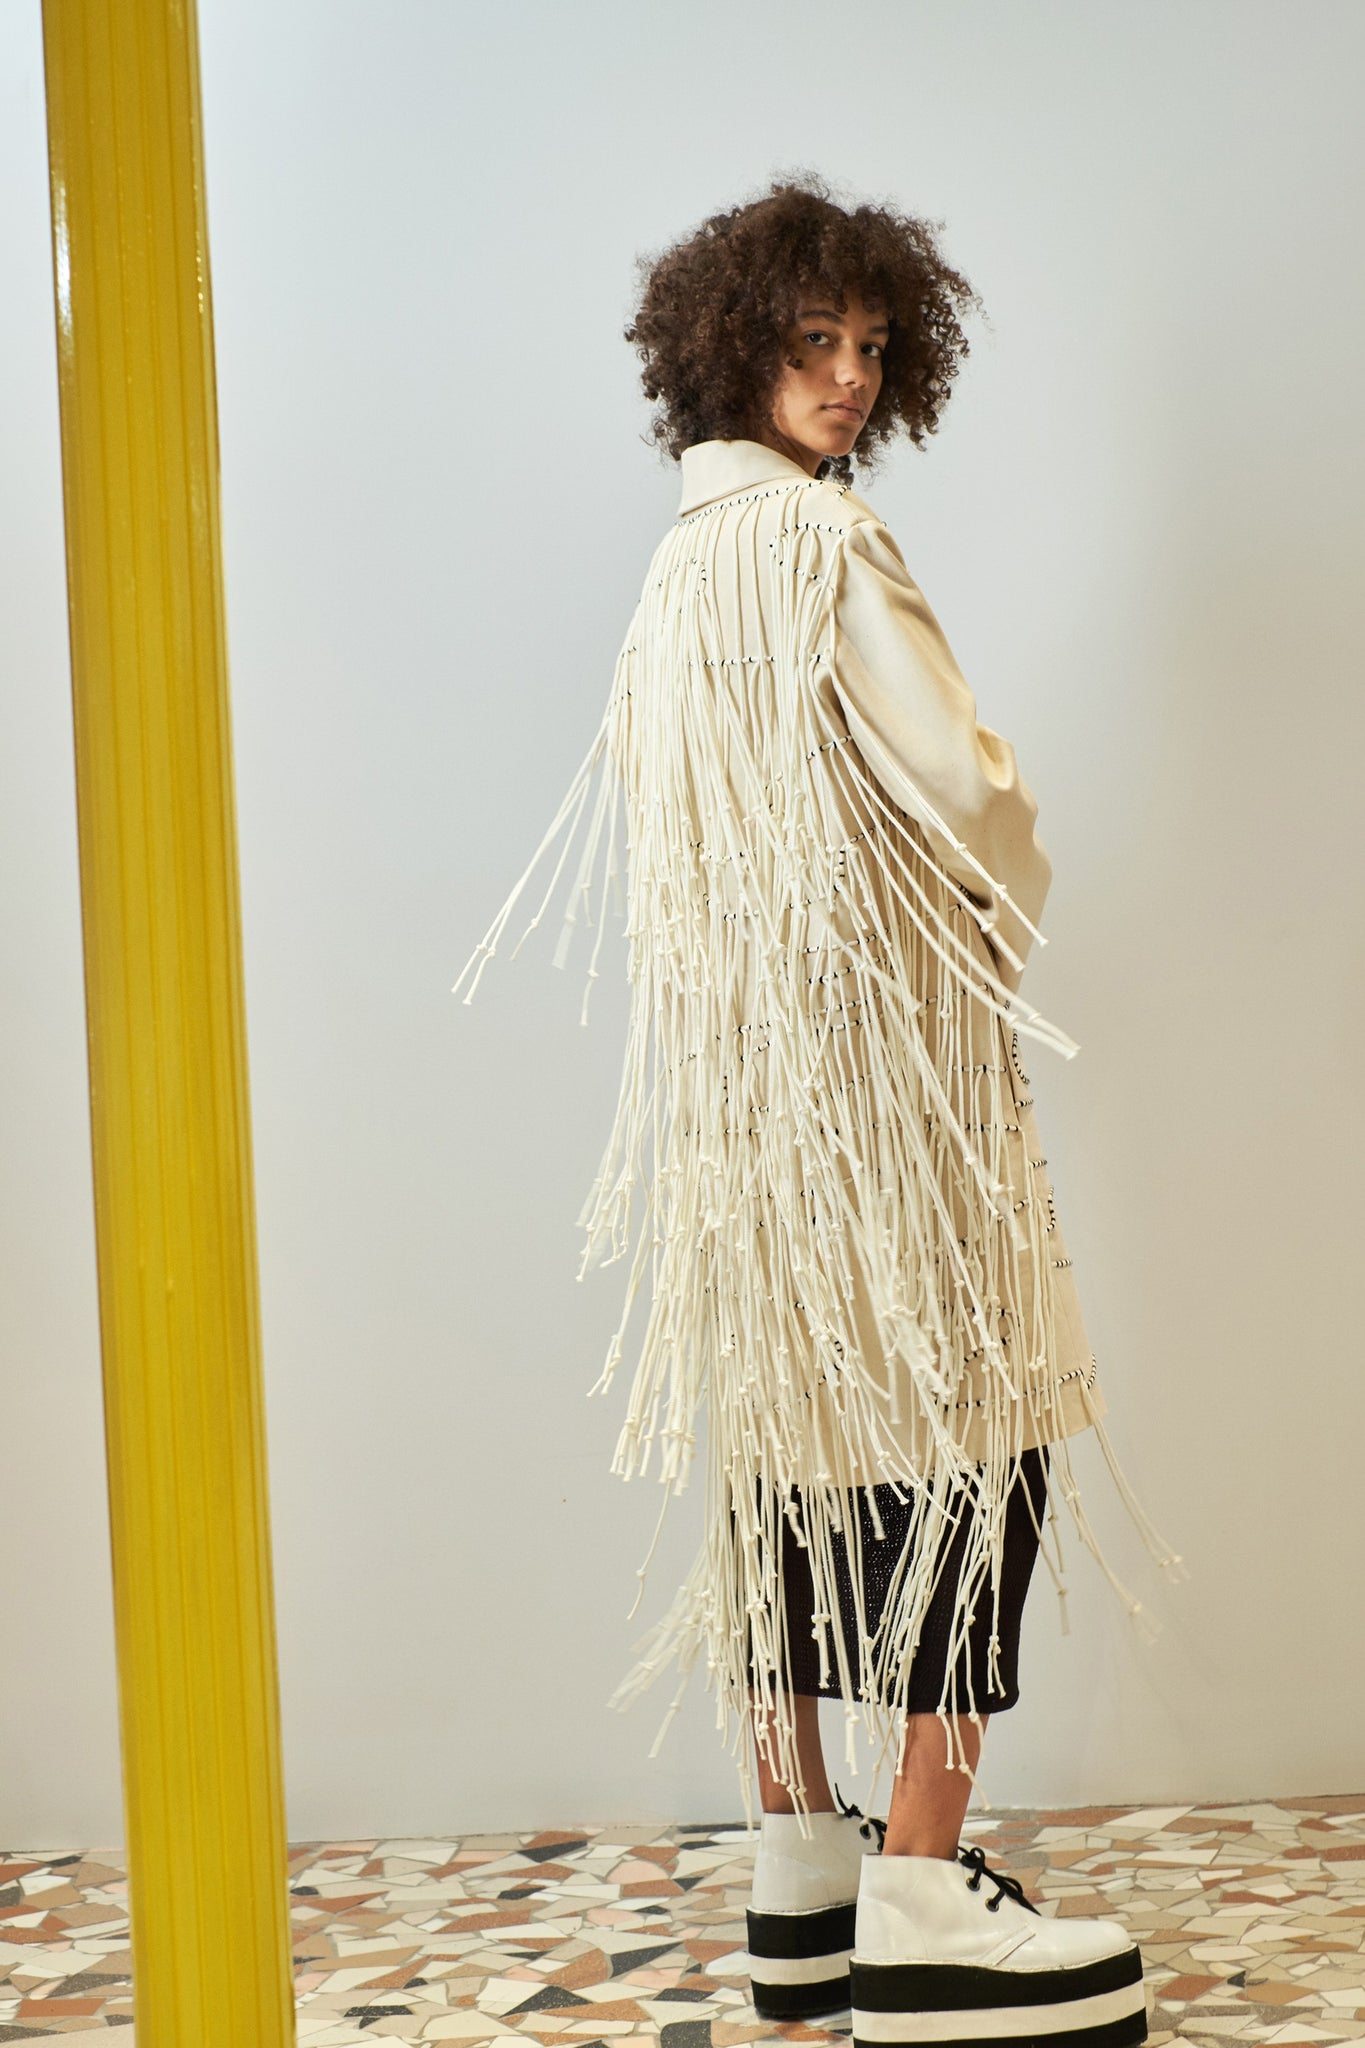 Macrame in Fashion revealed by Modern Macrame